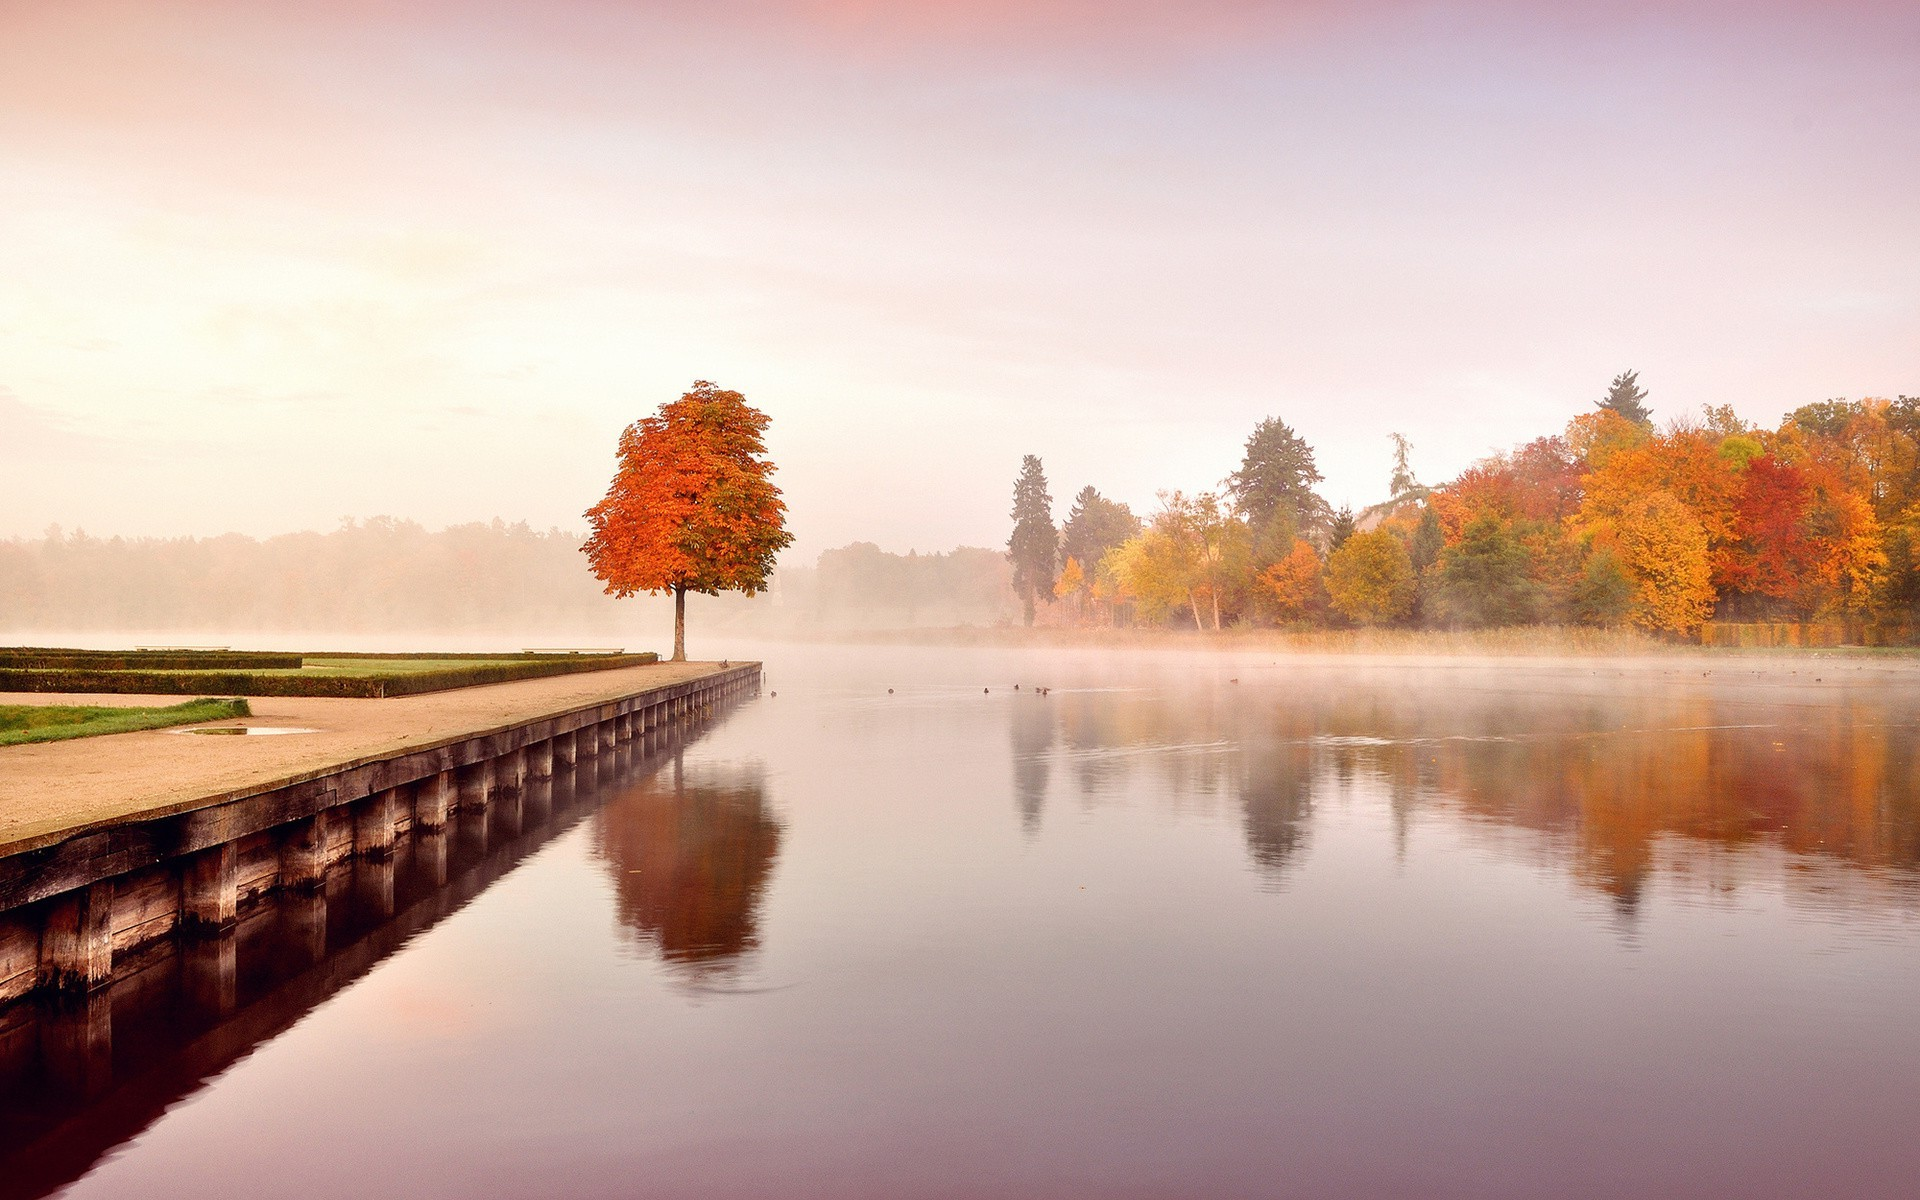 Fall Hd Wallpaper 1280x1024 Nature Landscape Fall Trees Water Calm Reflection